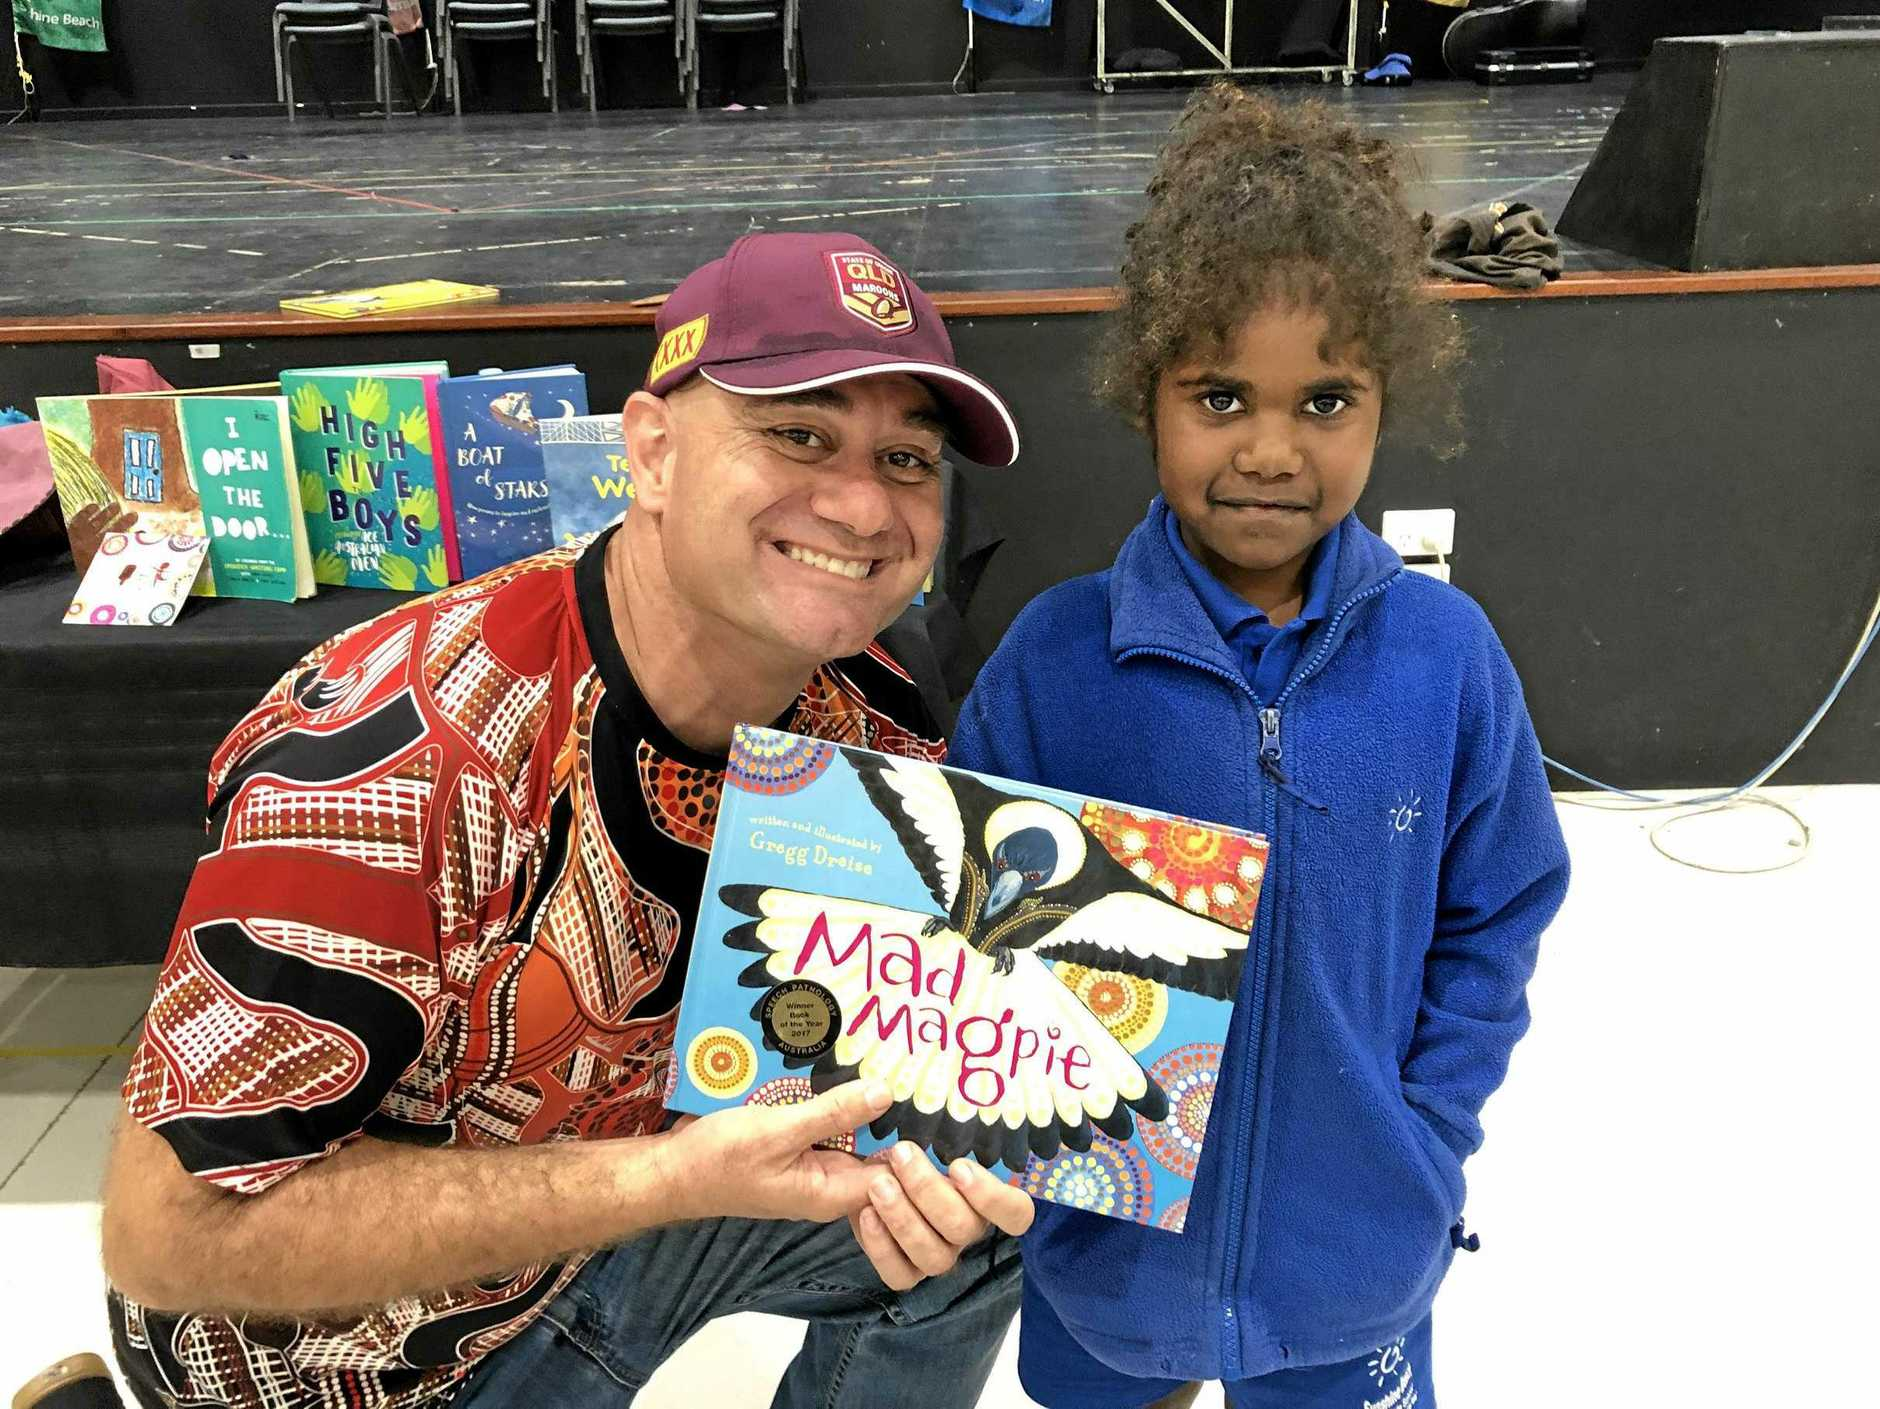 AUTHOR'S VISIT: Gregg Dreise enthrals Year 1 student Jahleice, from Sunshine Beach State School, with his storytelling.